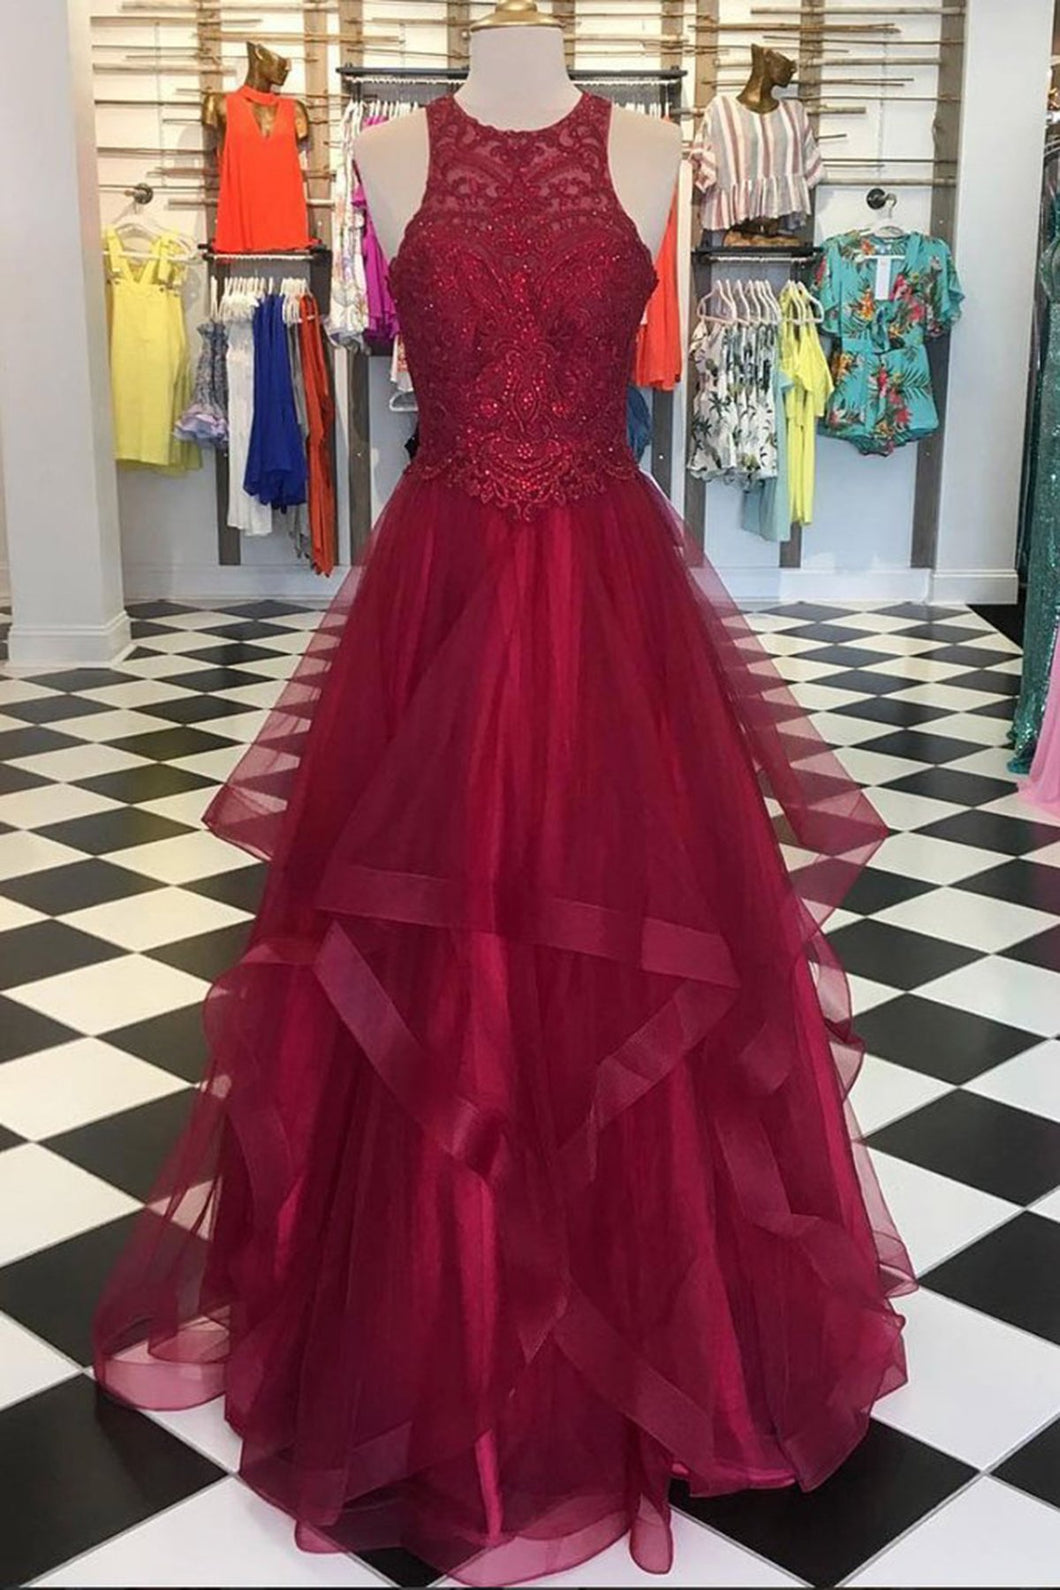 2019 Prom Dresses | Burgundy tulle sleeveless long senior prom dress, long lace top sequins evening dress